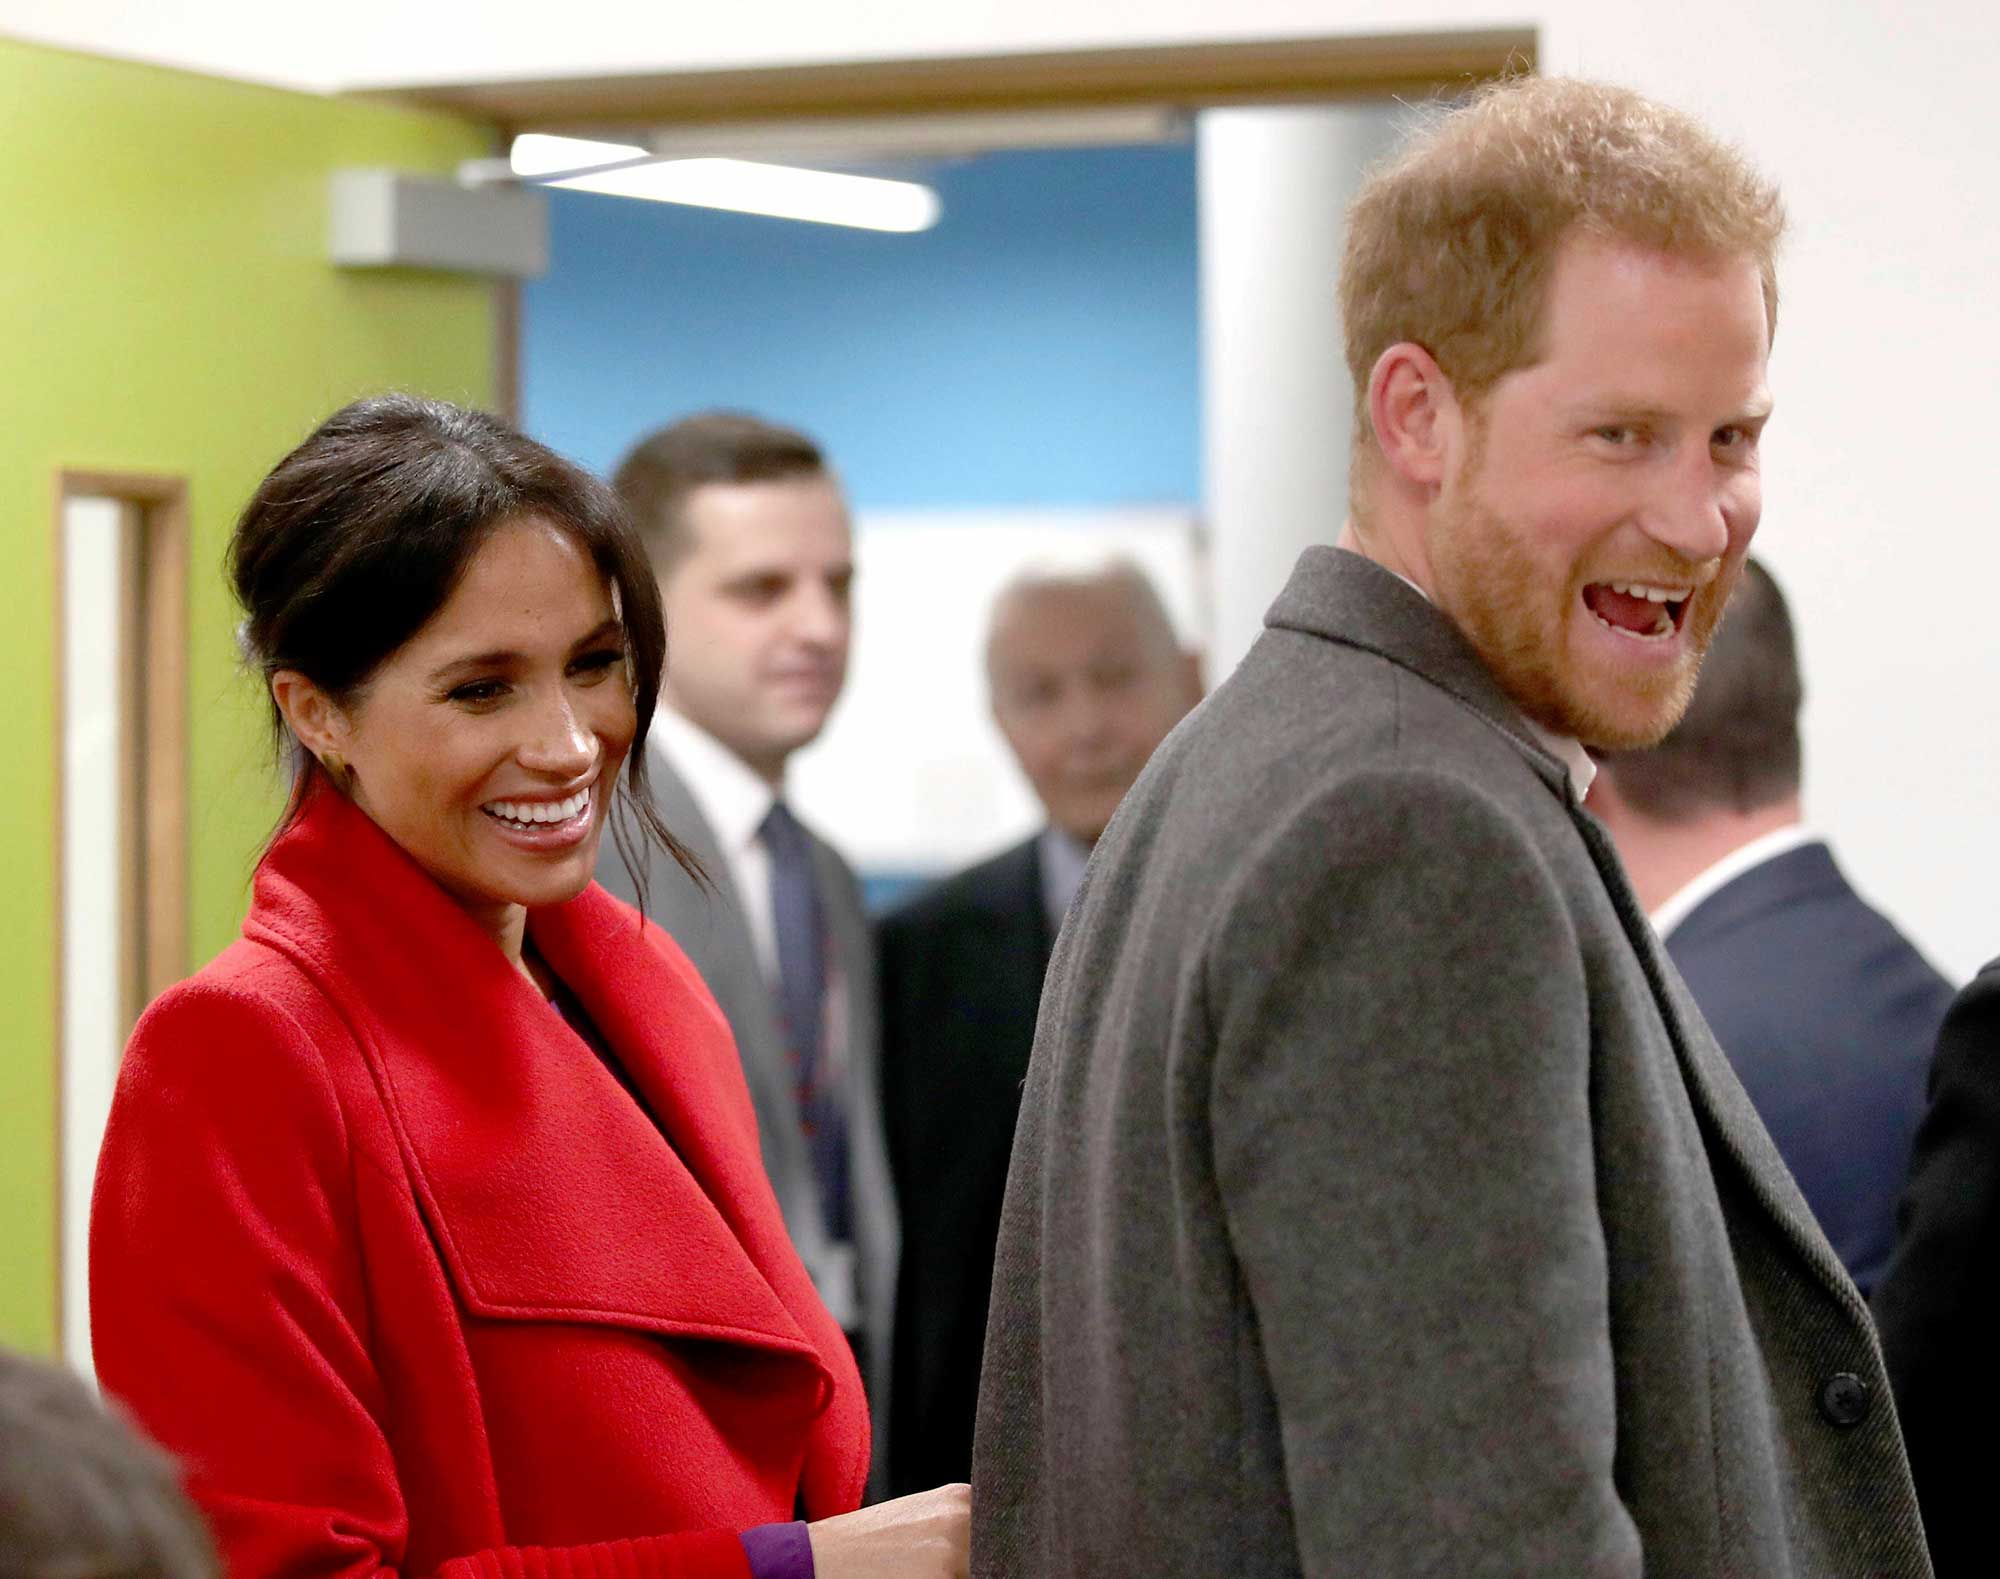 <div class='meta'><div class='origin-logo' data-origin='none'></div><span class='caption-text' data-credit='Danny Lawson/PA Wire via AP'>The Duke and Duchess of Sussex at the Hive, Wirral Youth Zone as part of a visit to Birkenhead.</span></div>